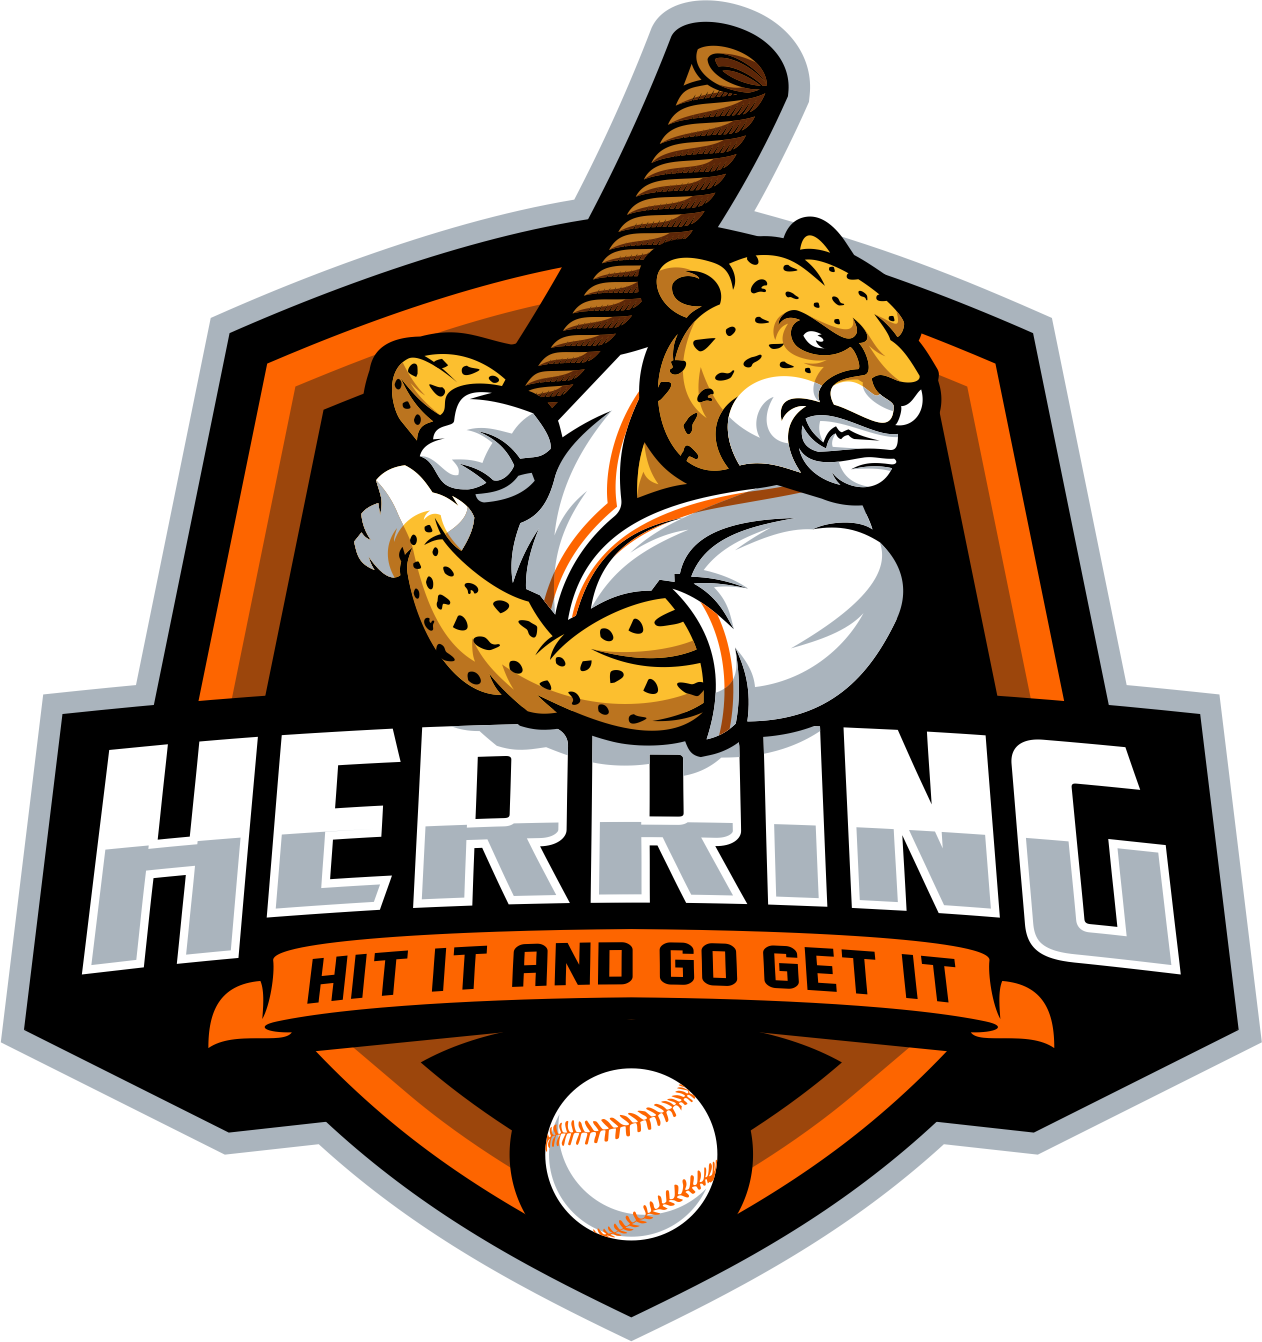 Need modern hip baseball logo for podcast for parents of baseball players. Cool n Funky